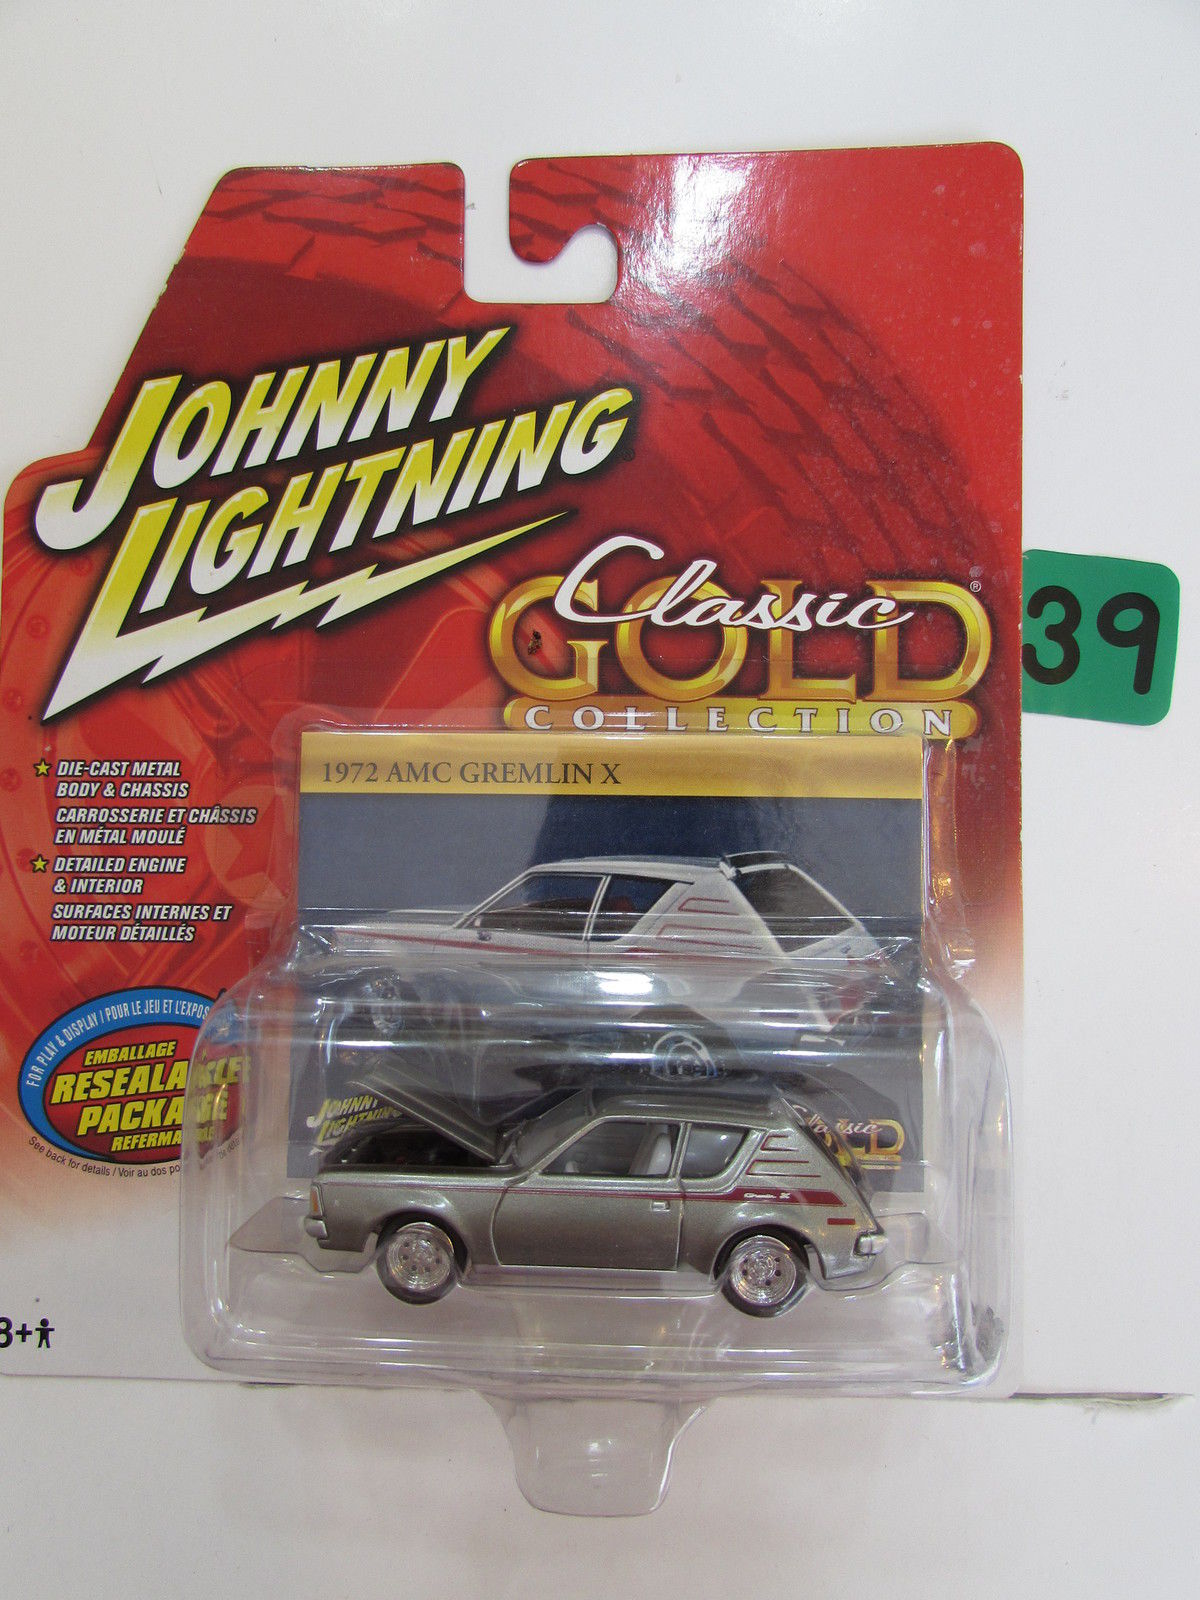 JOHNNY LIGHTNING CLASSIC GOLD COLLECTION 1972 AMC GREMLIN X WHITE LIGHTNING